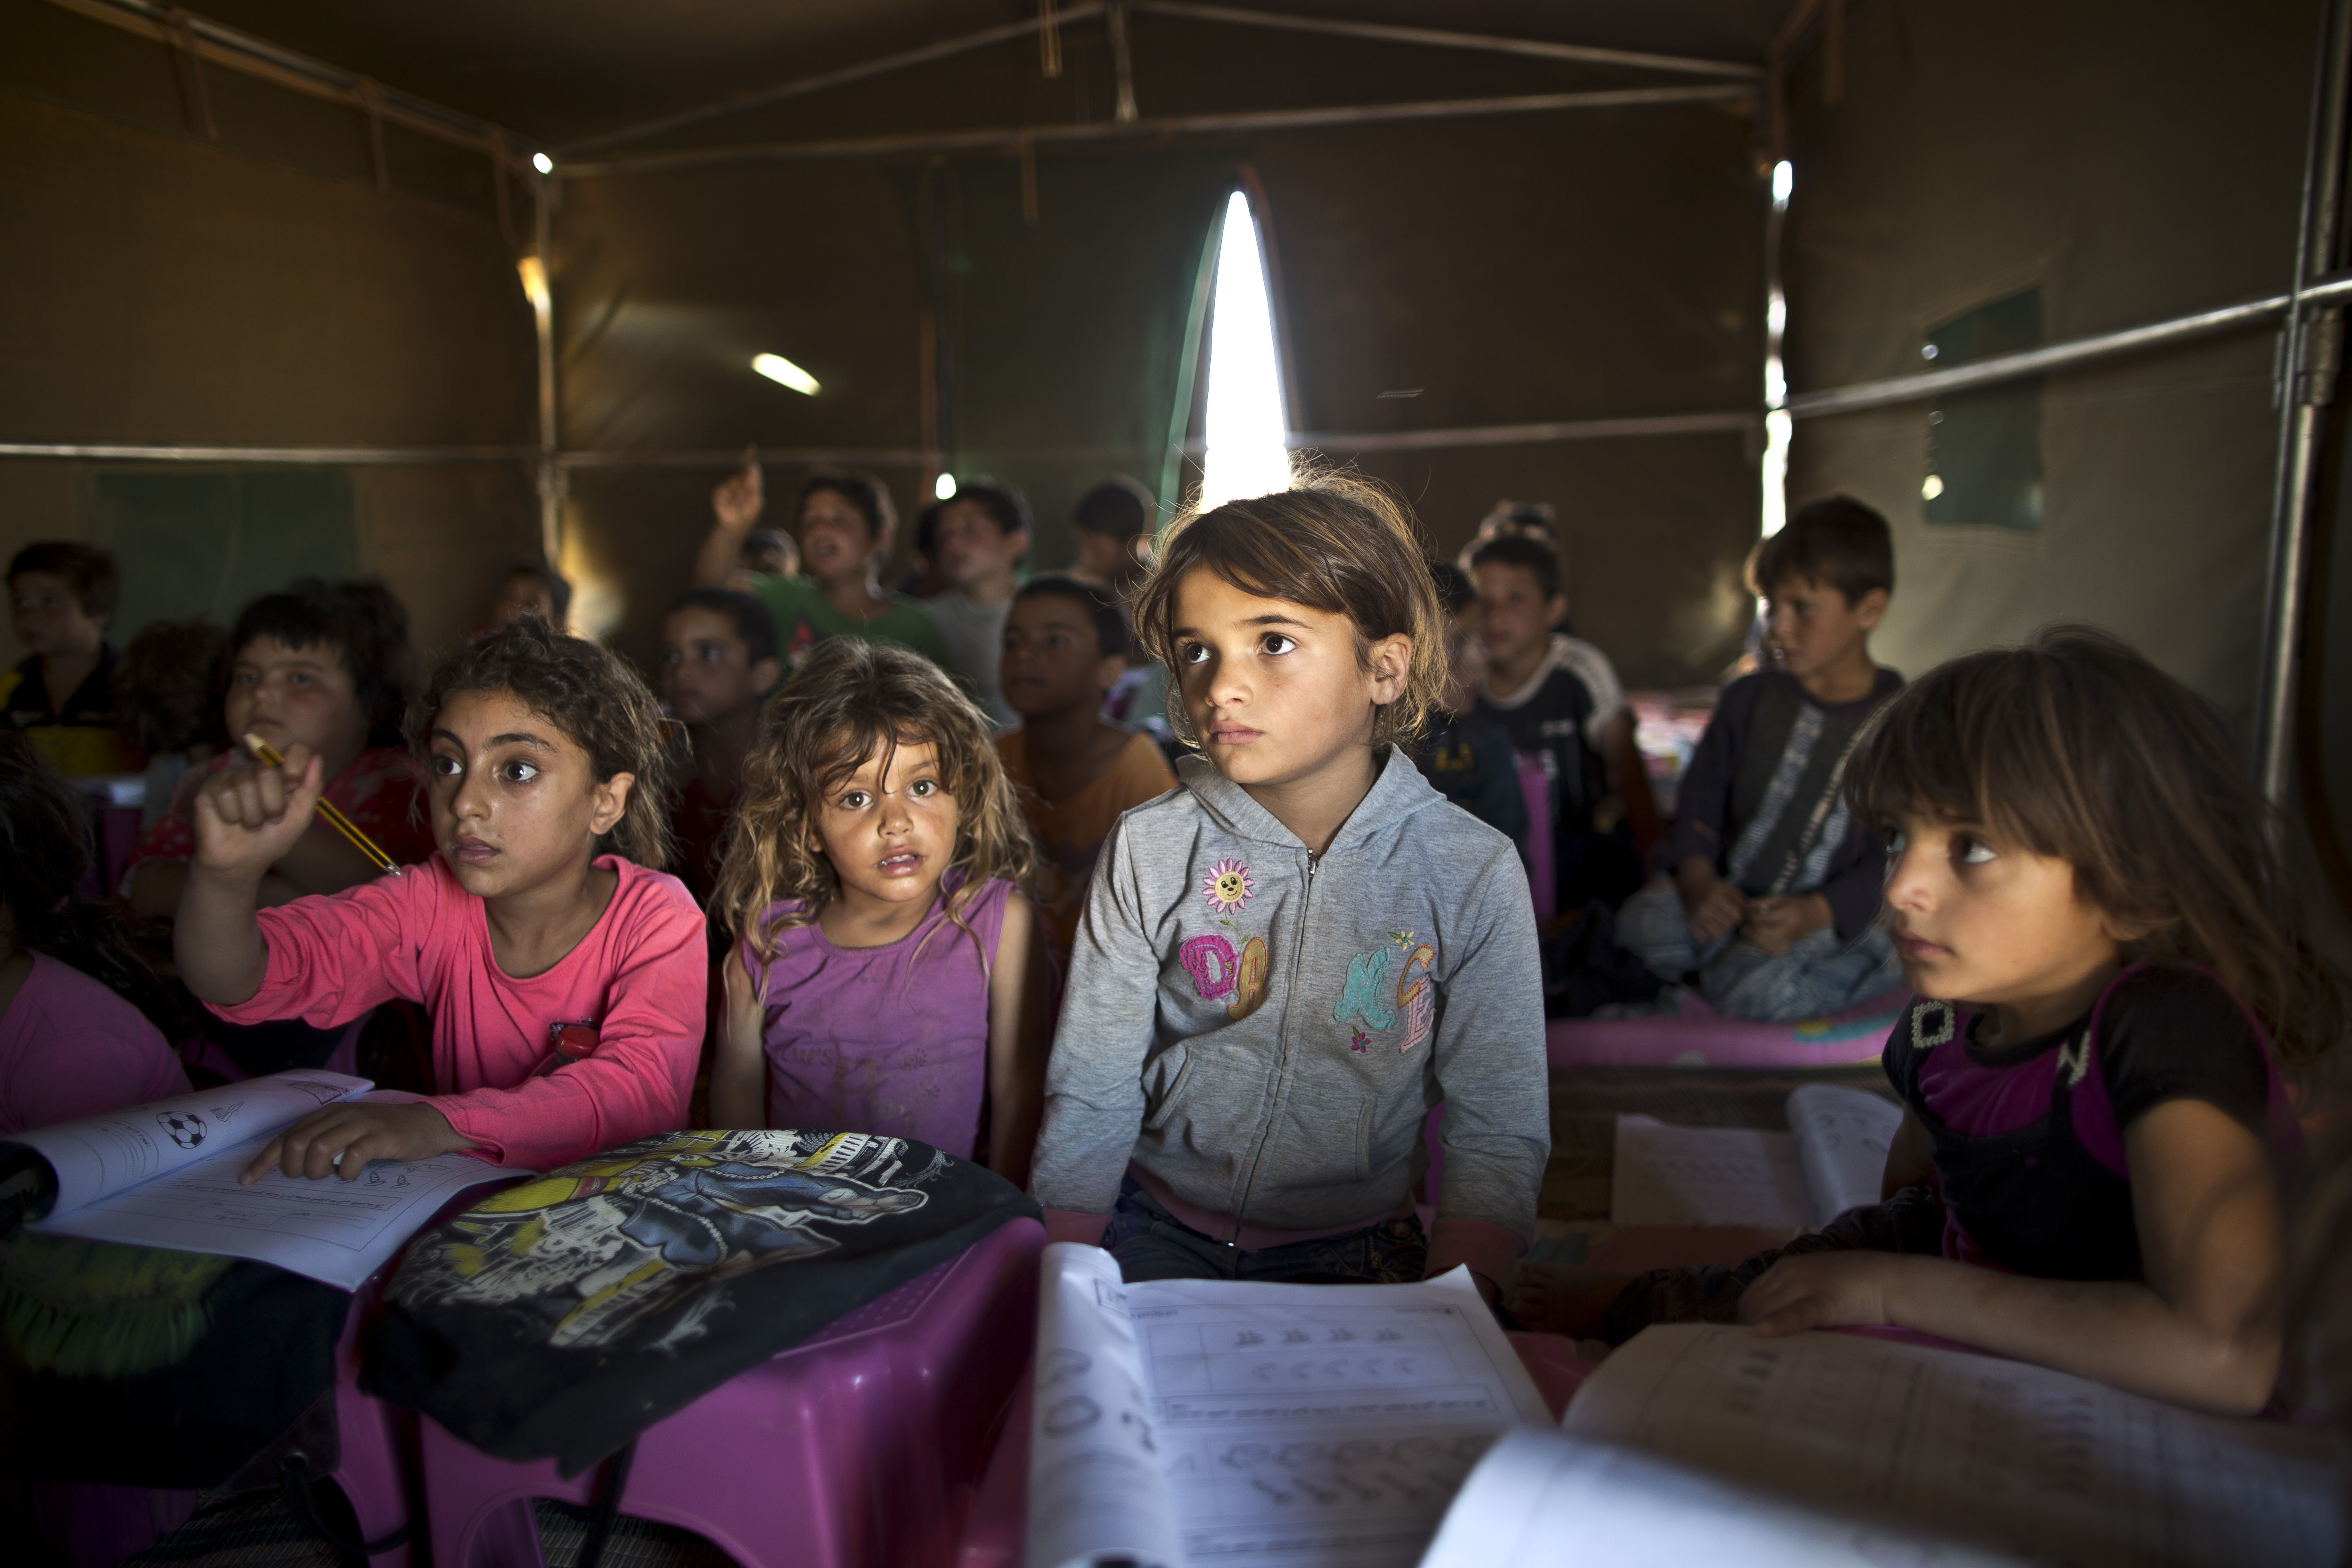 In this Aug. 11, 2015, file photo, Syrian refugee children attend a class at a makeshift school set up in a tent at an informal settlement near the Syrian border on the outskirts of Mafraq, Jordan. Forty percent of children from five conflict-scarred Middle Eastern countries are not in school, the U.N. child-welfare agency said in a report on Sept. 3, 2015